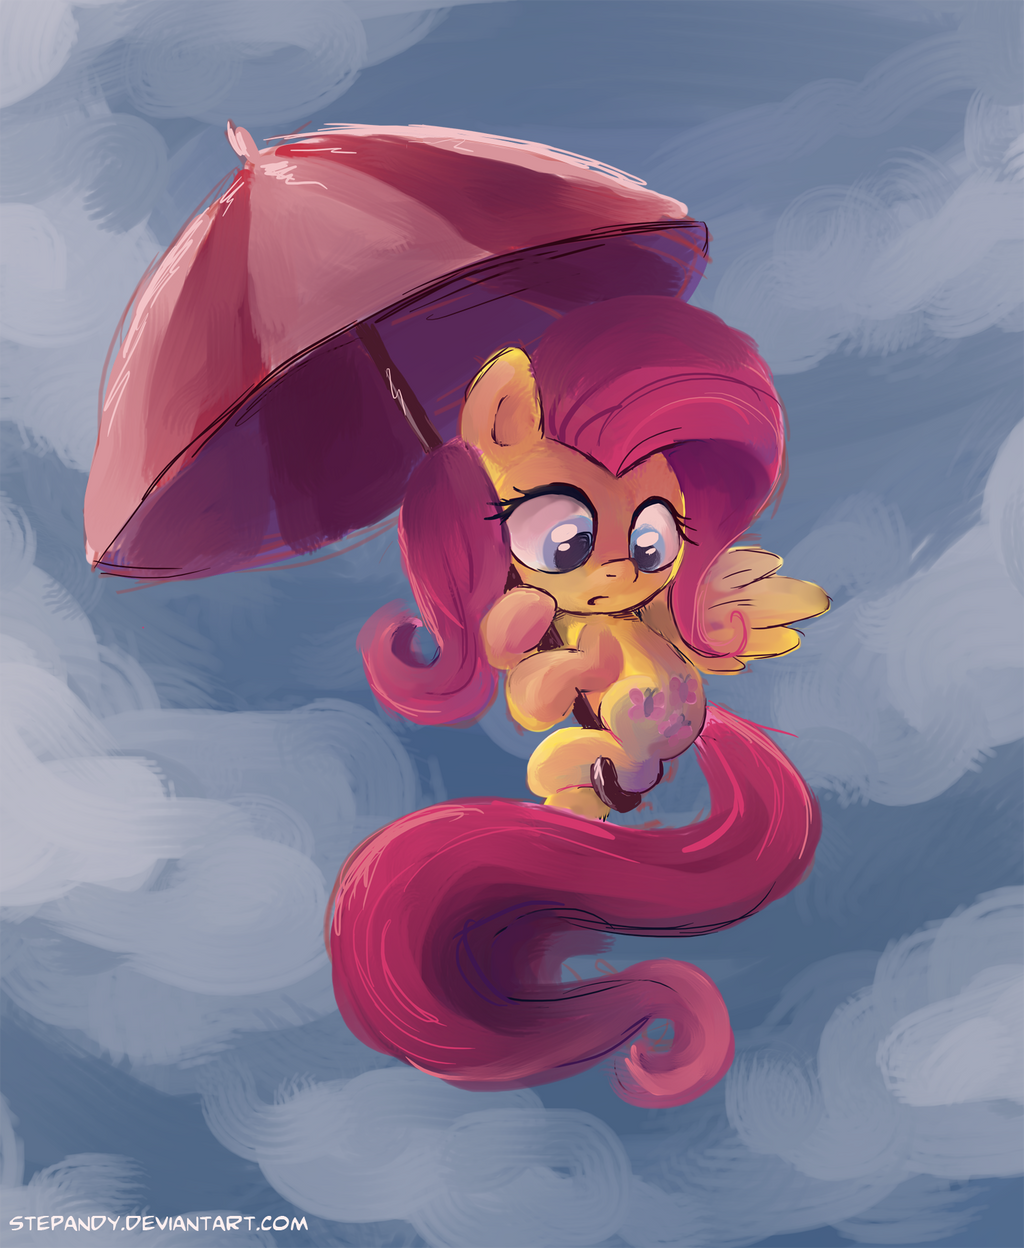 Umbrella by StePandy